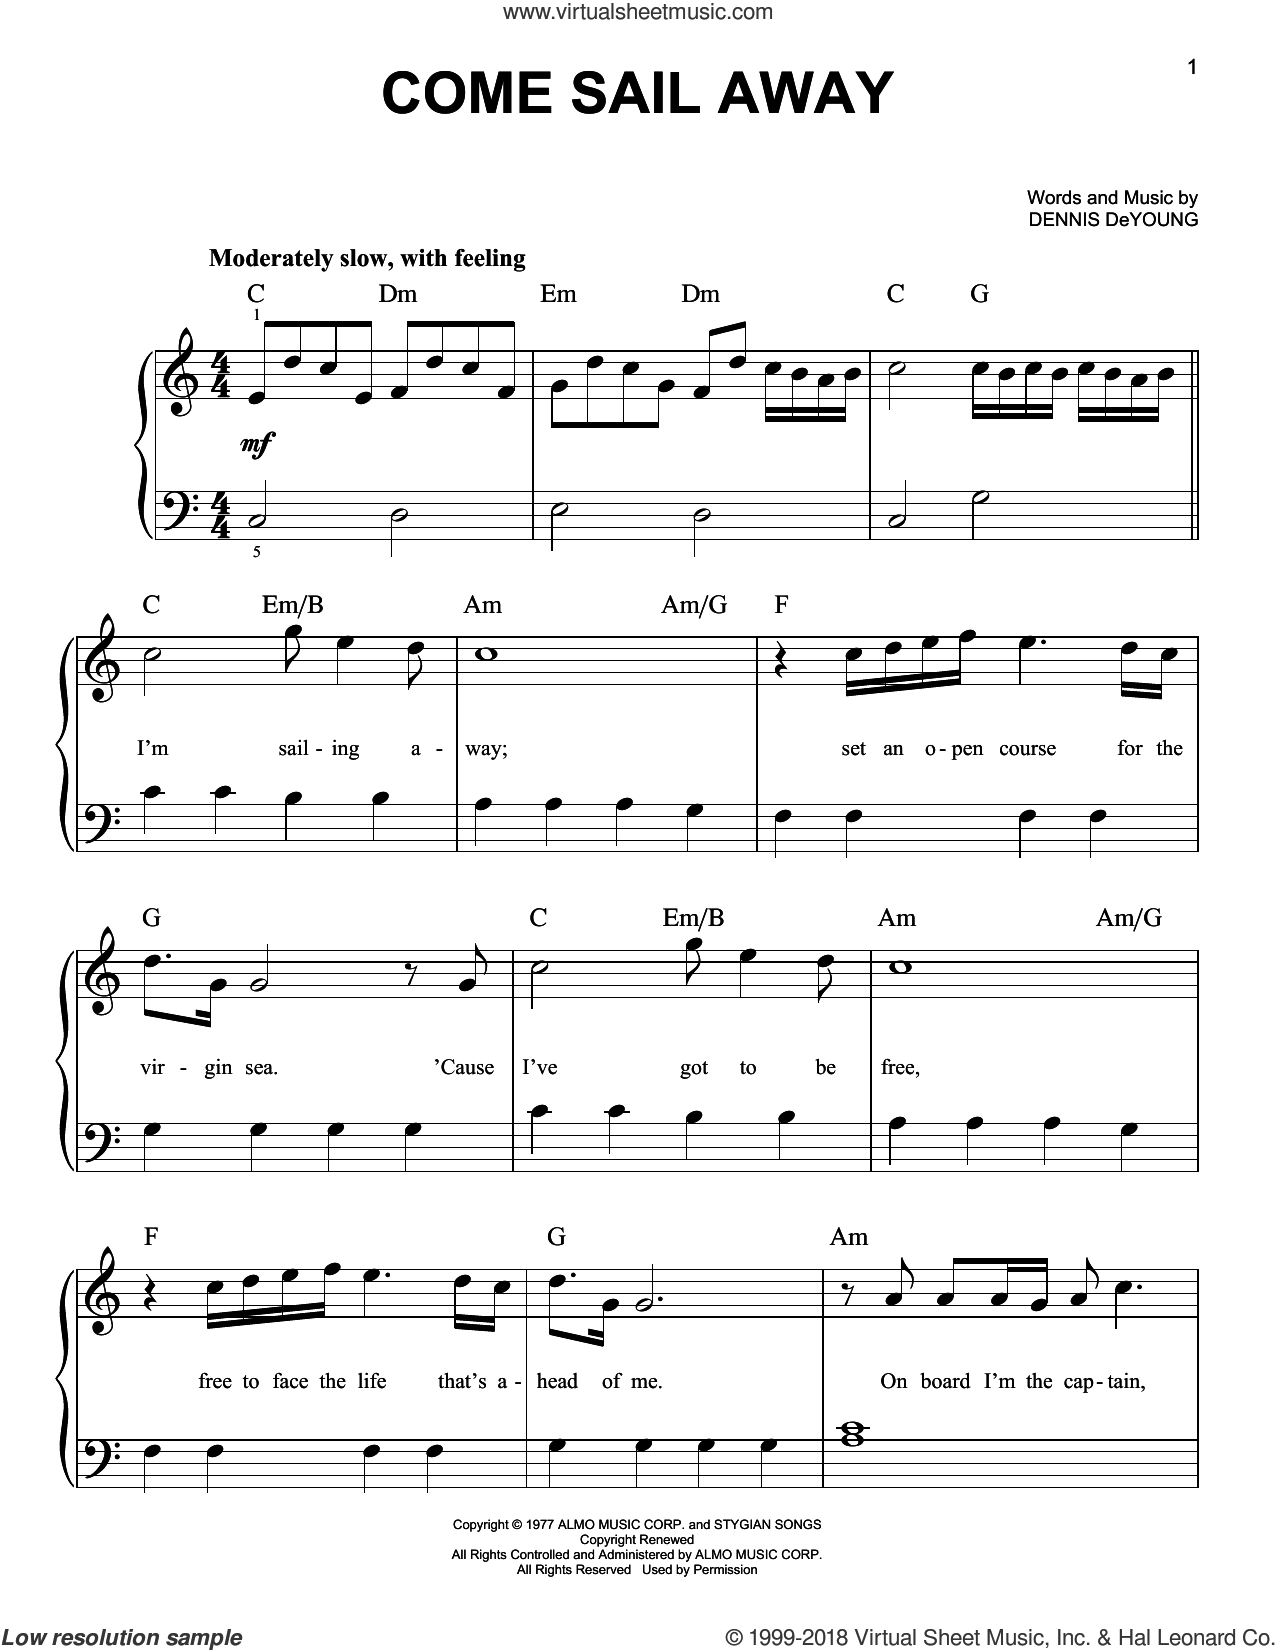 Come Sail Away sheet music for piano solo by Styx. Score Image Preview.